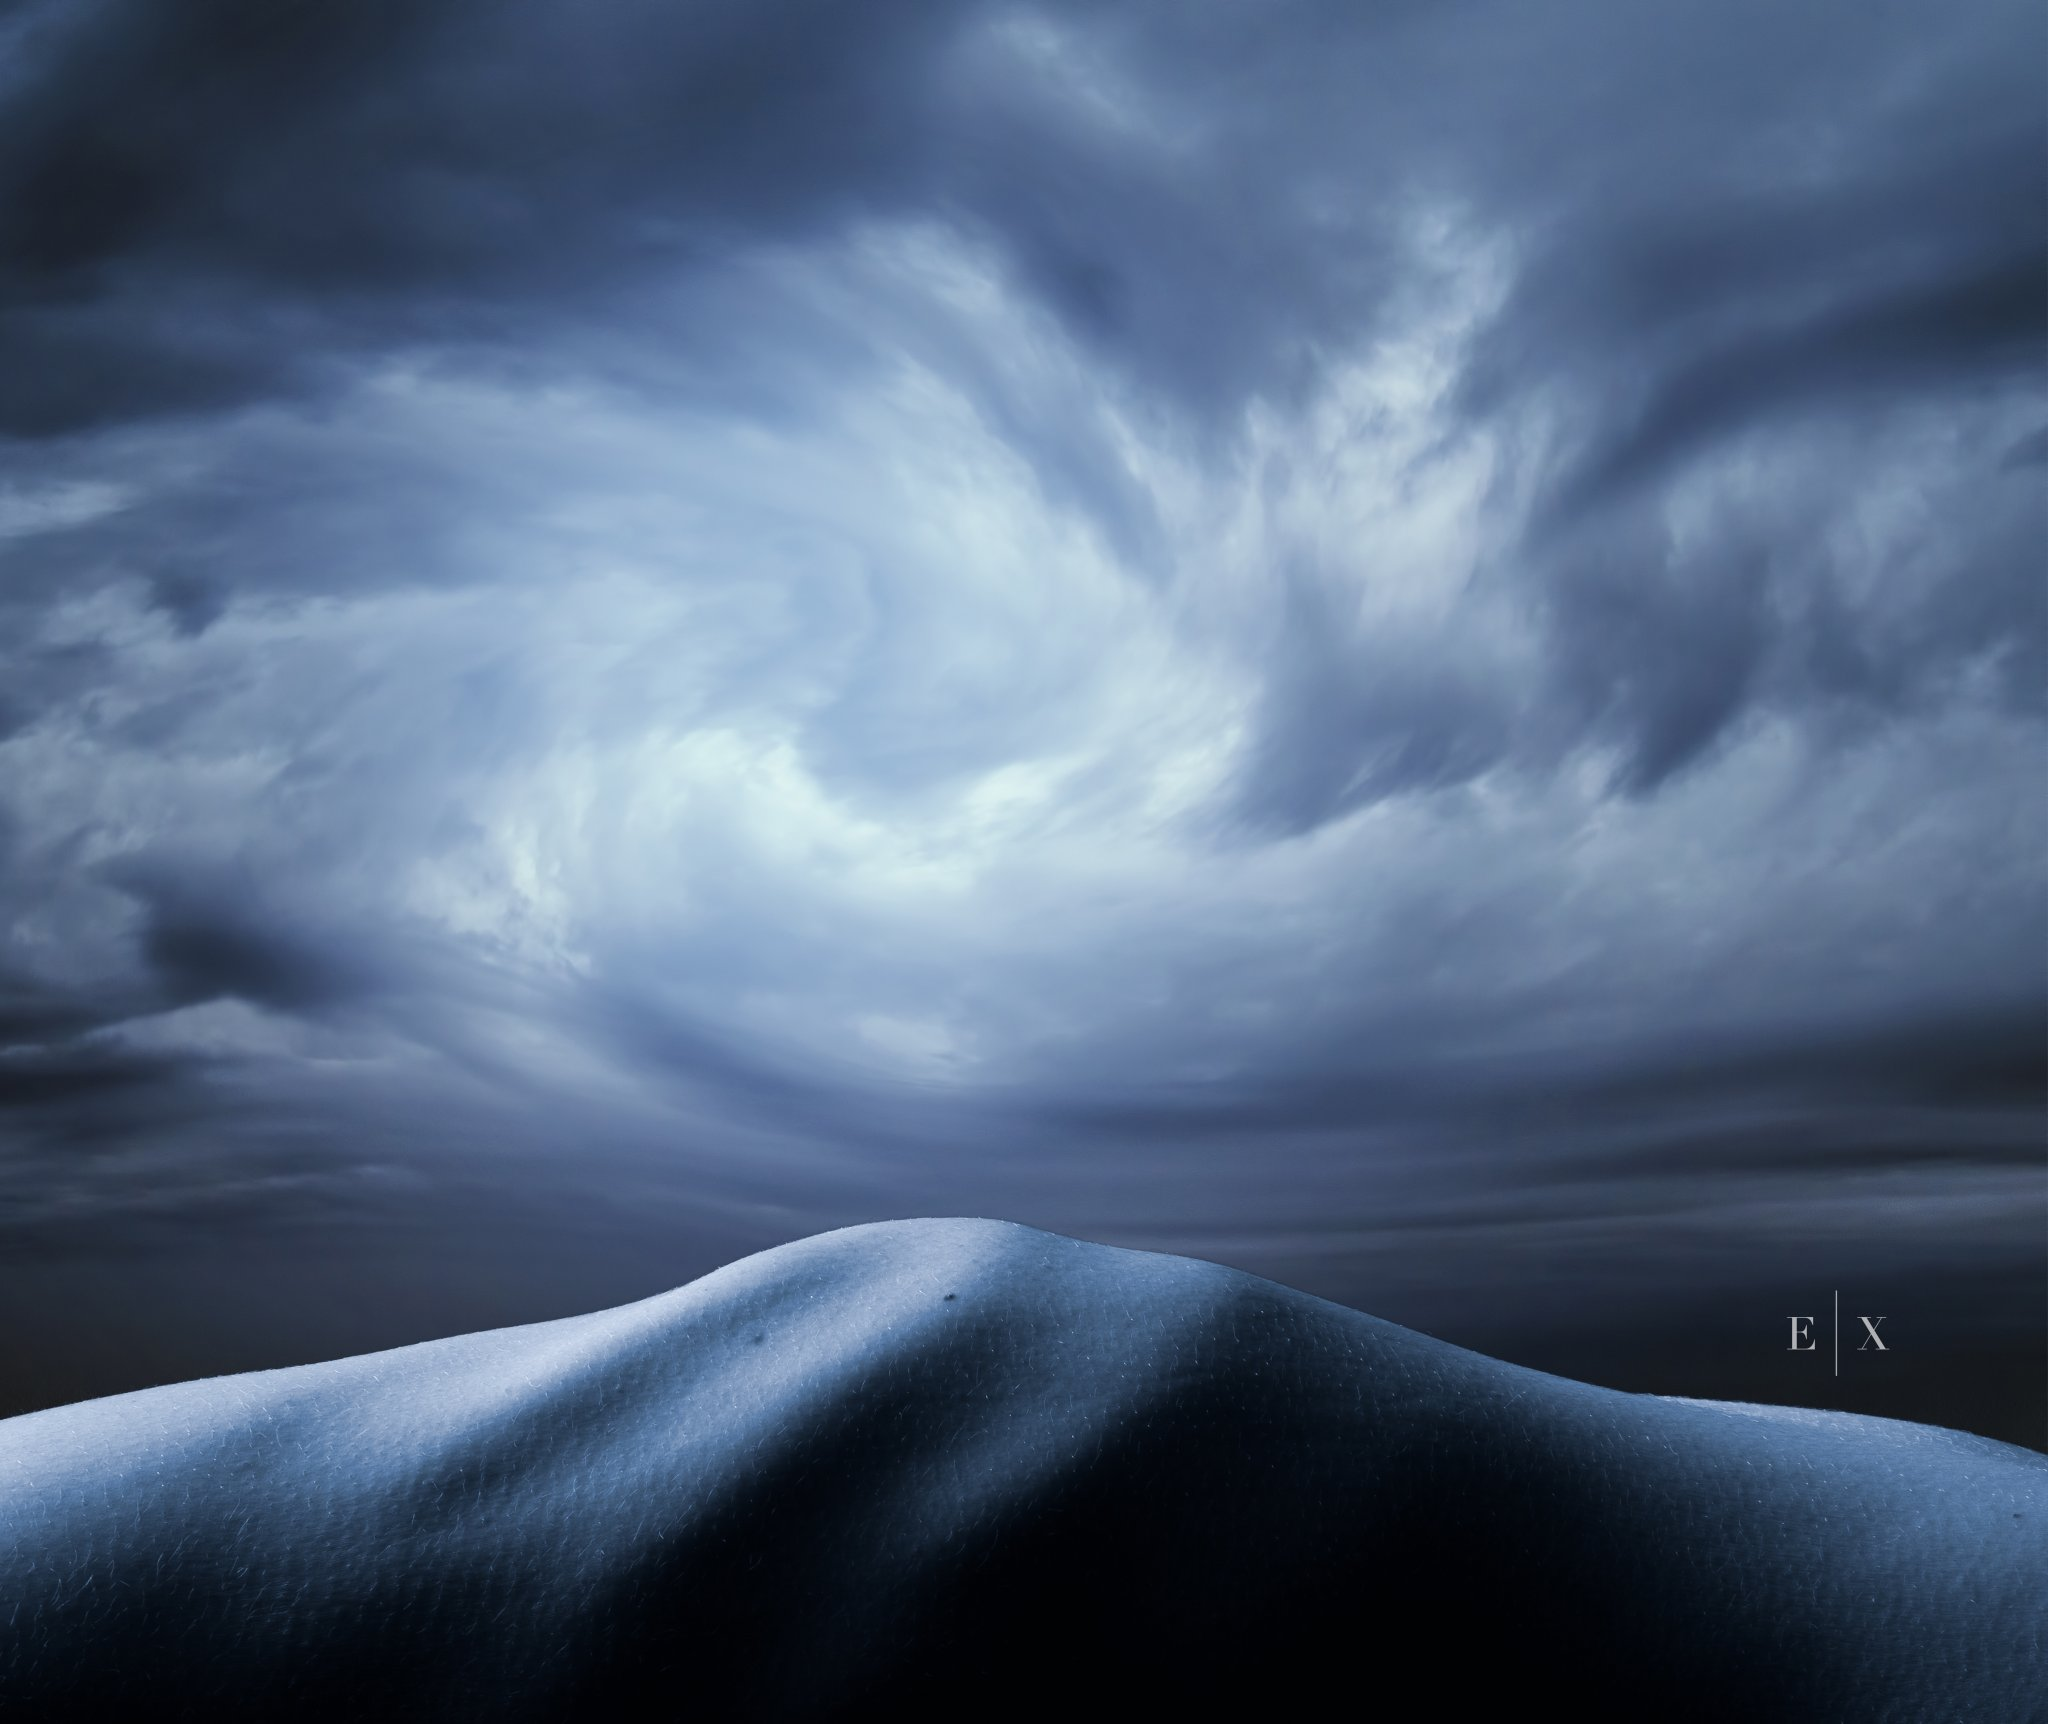 Bodyscapes Fine Art Gallery | Elegant Exposures Photography